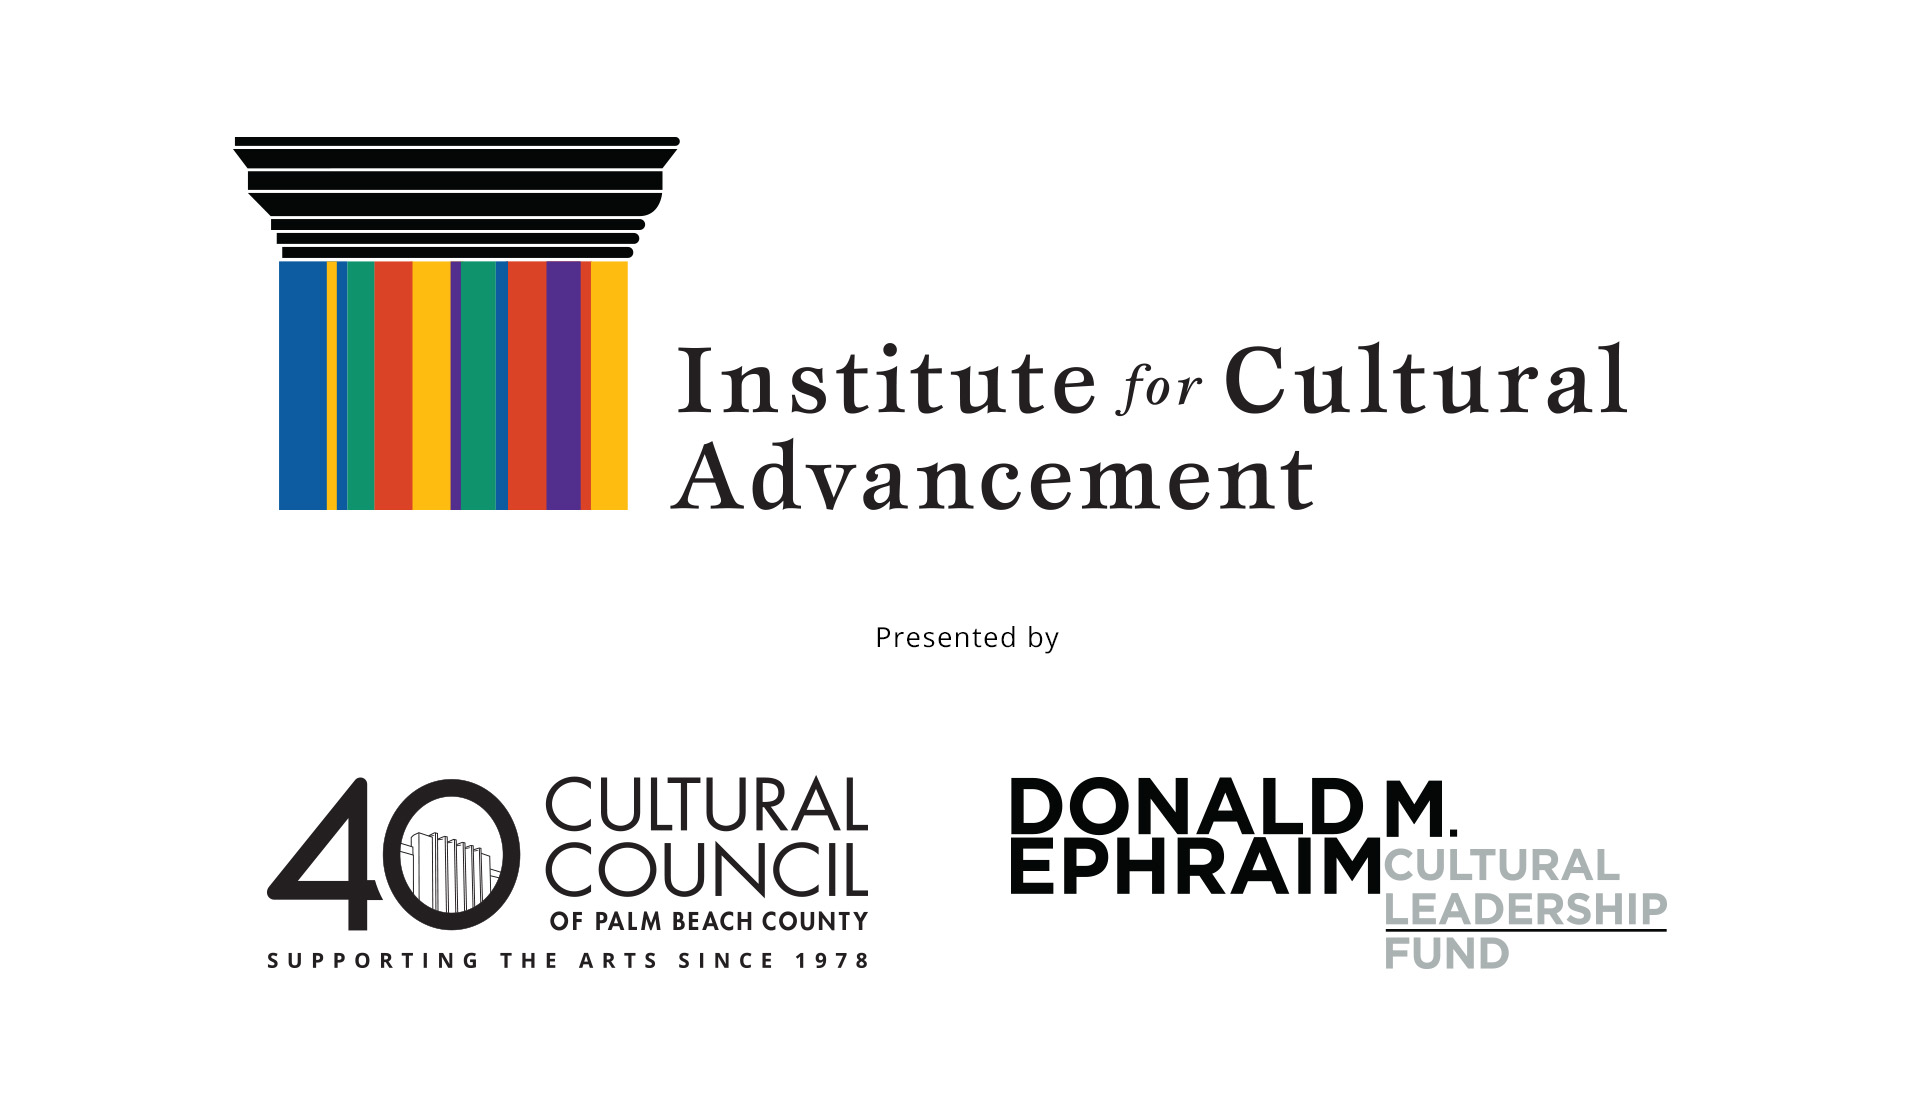 Institute for Cultural Advancement